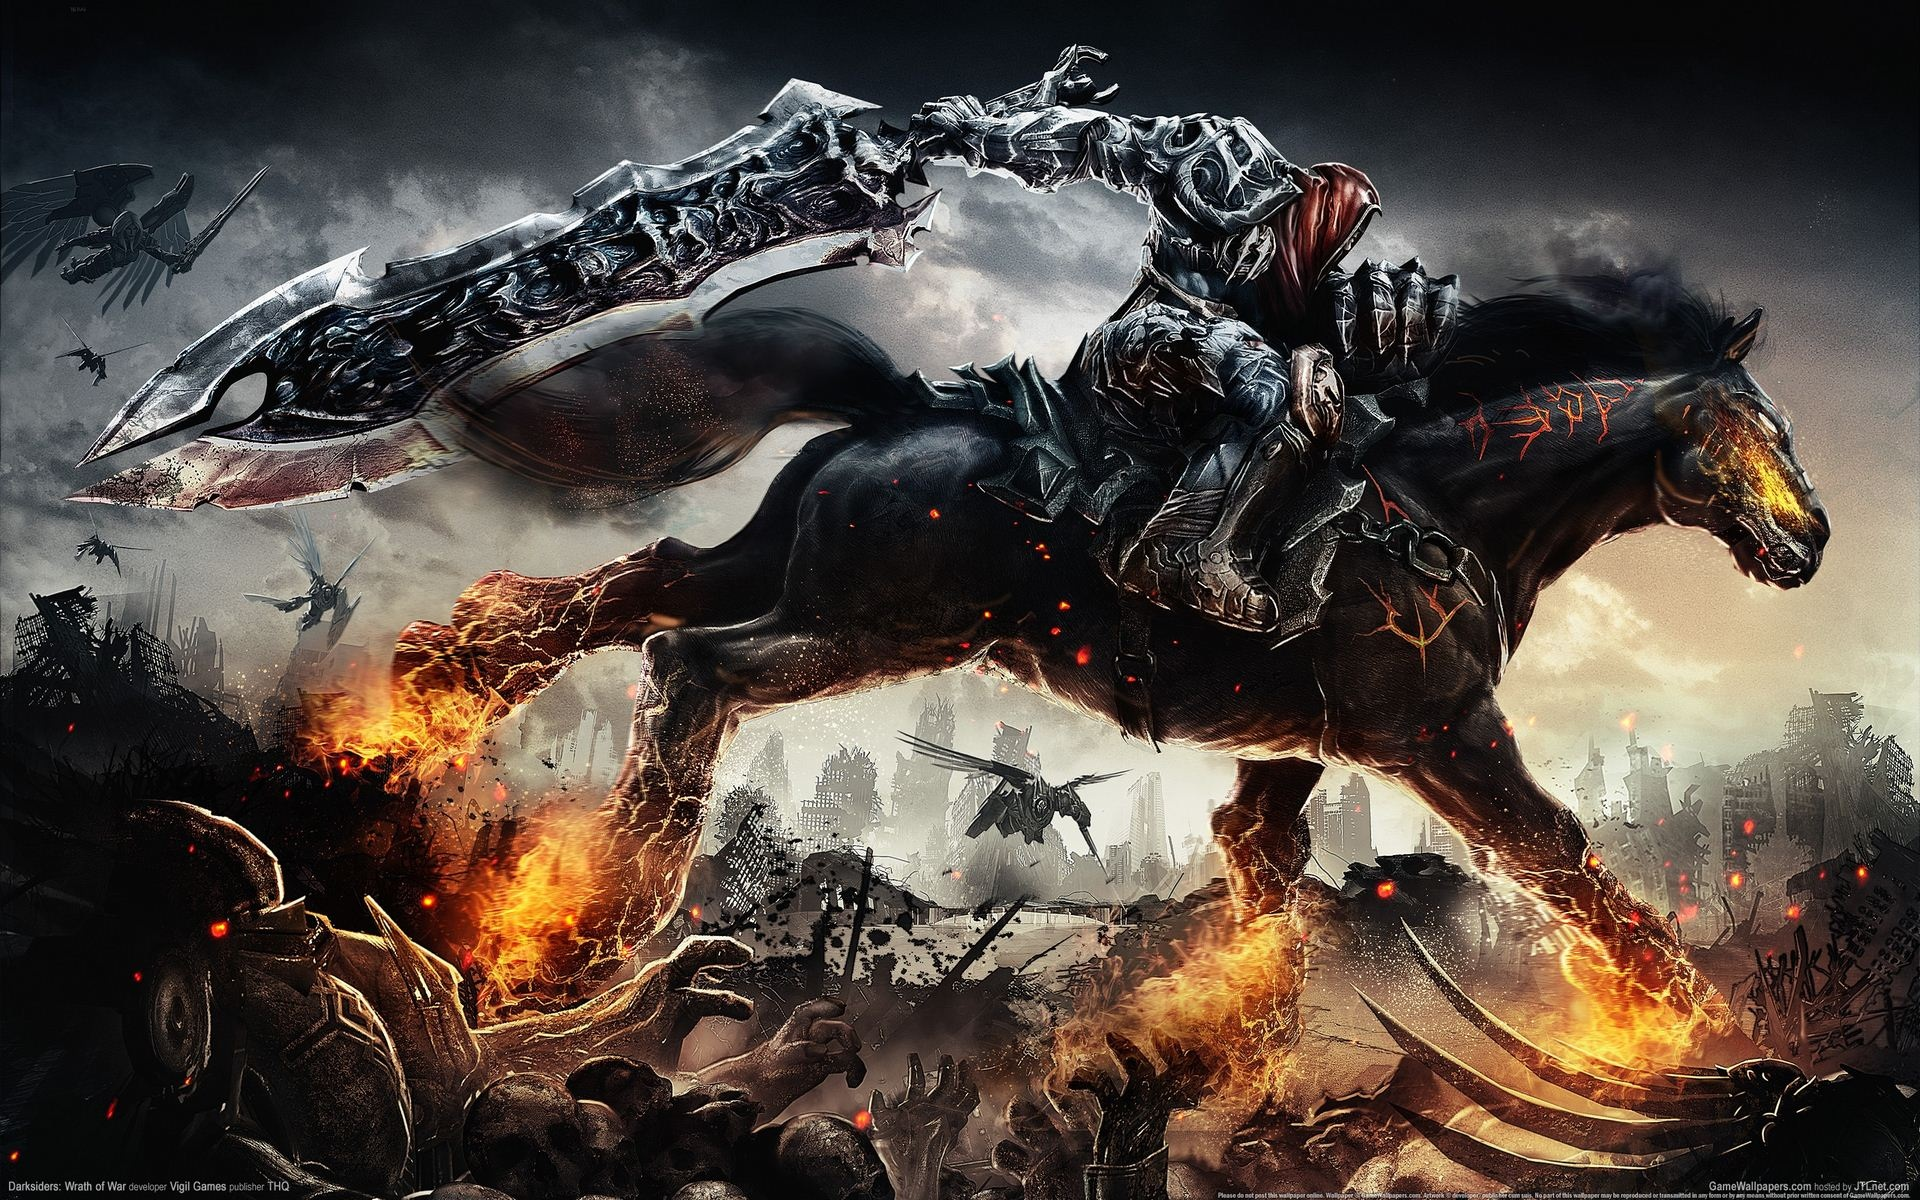 darksiders 1 war - single player game for pc